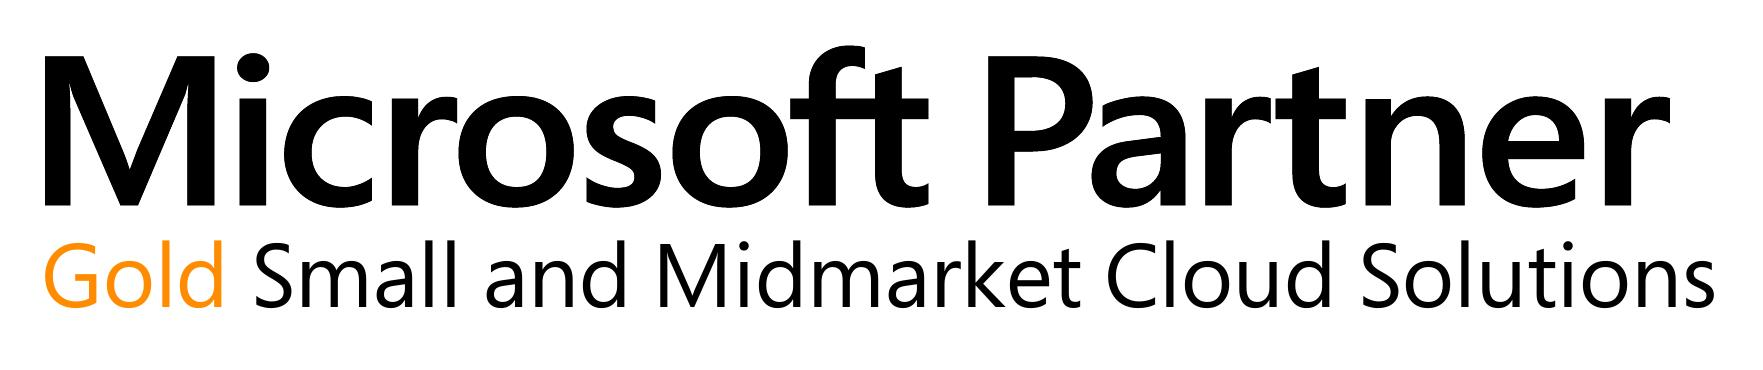 Dicide ist Microsoft Partner Gold Small and Midmarket Cloud Solution